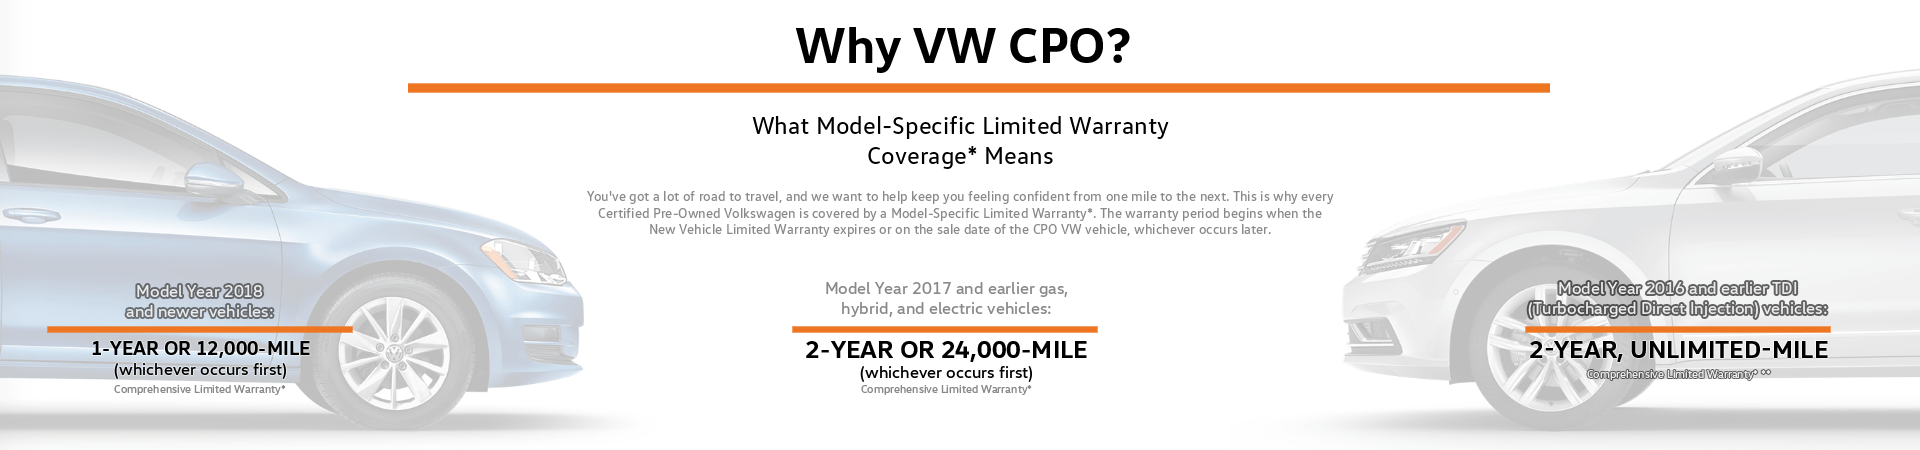 Why VW CPO